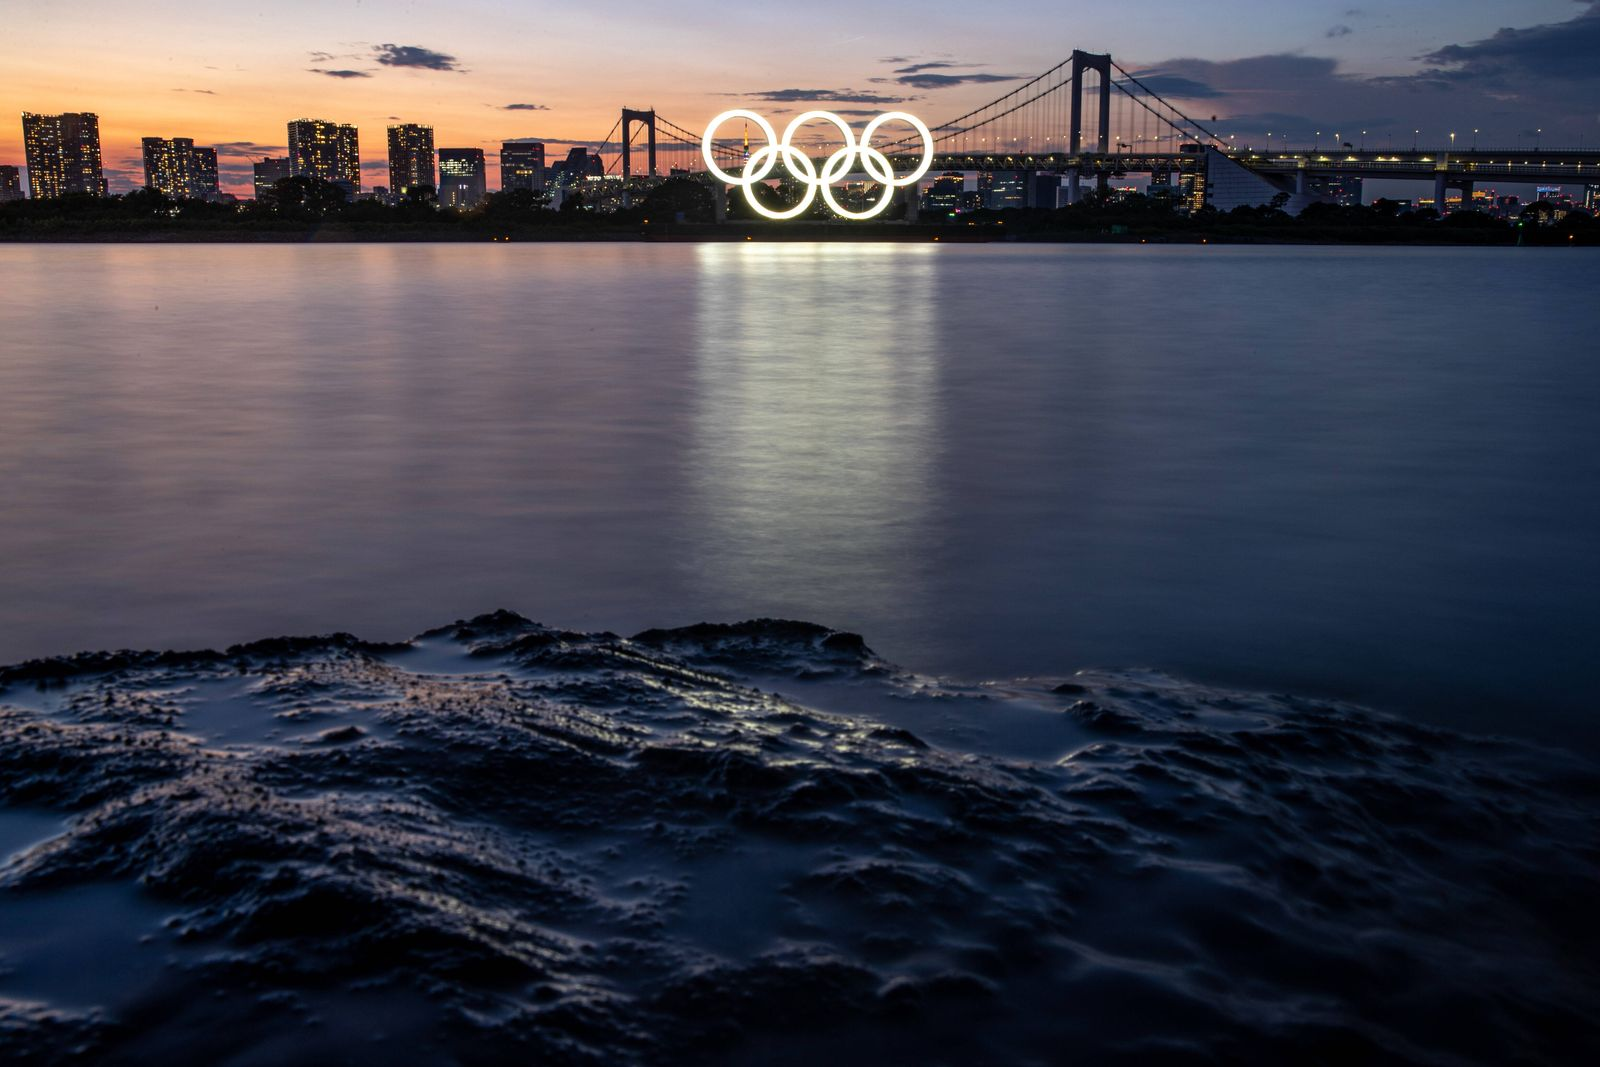 TOKYO, JAPAN - JULY 22, 2021: A barge carrying the Olympic Rings passes Rainbow Bridge over Tokyo Bay. Tokyo was to host